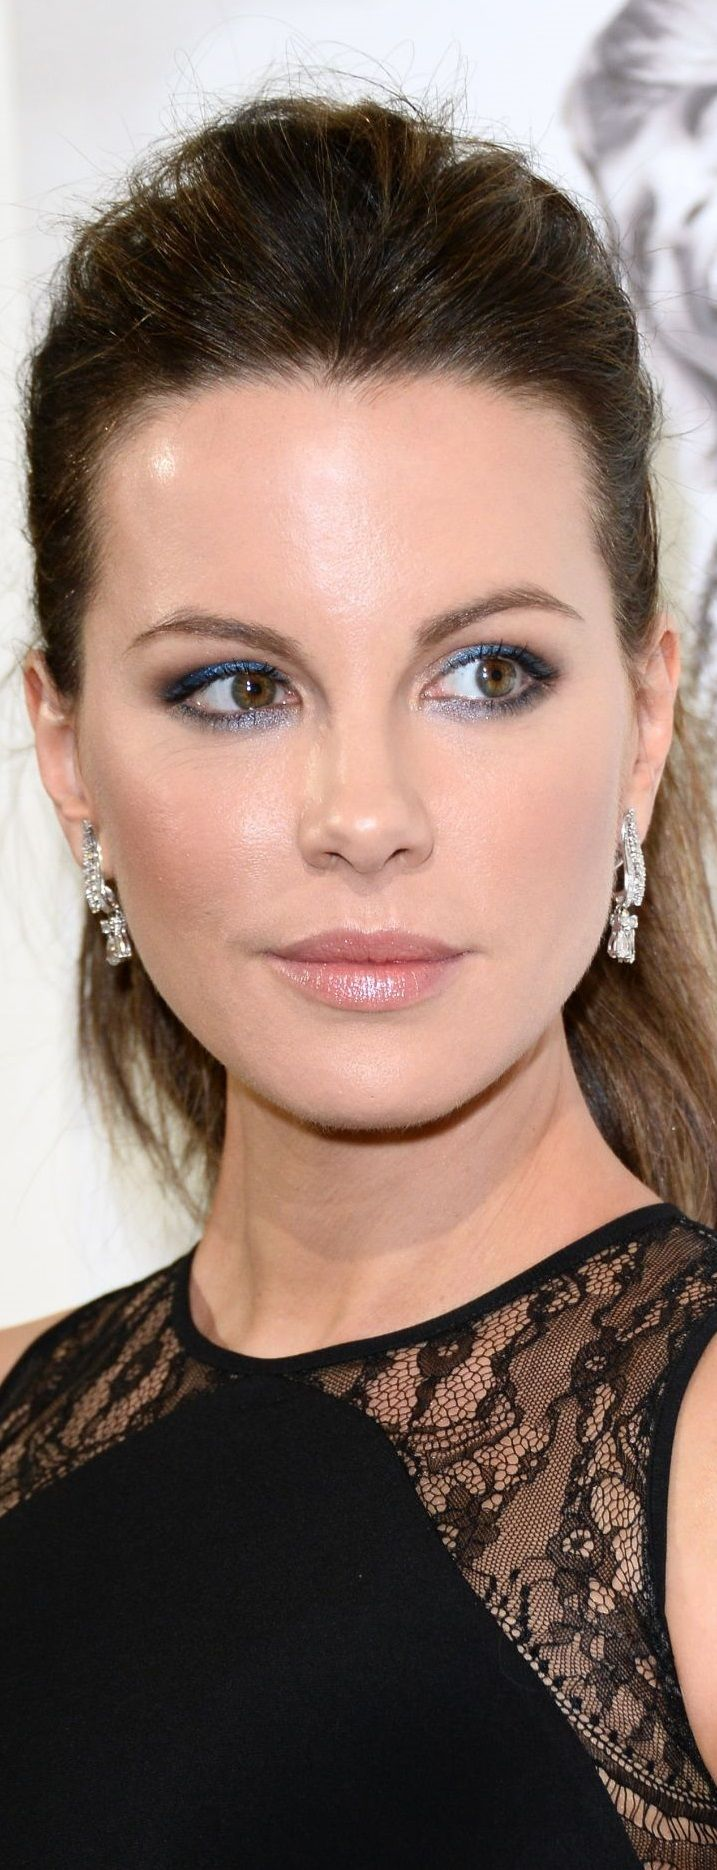 Kate Beckinsale – Costume Designers Guild Awards 2016 Cocktail Reception in Beverly Hills, CA